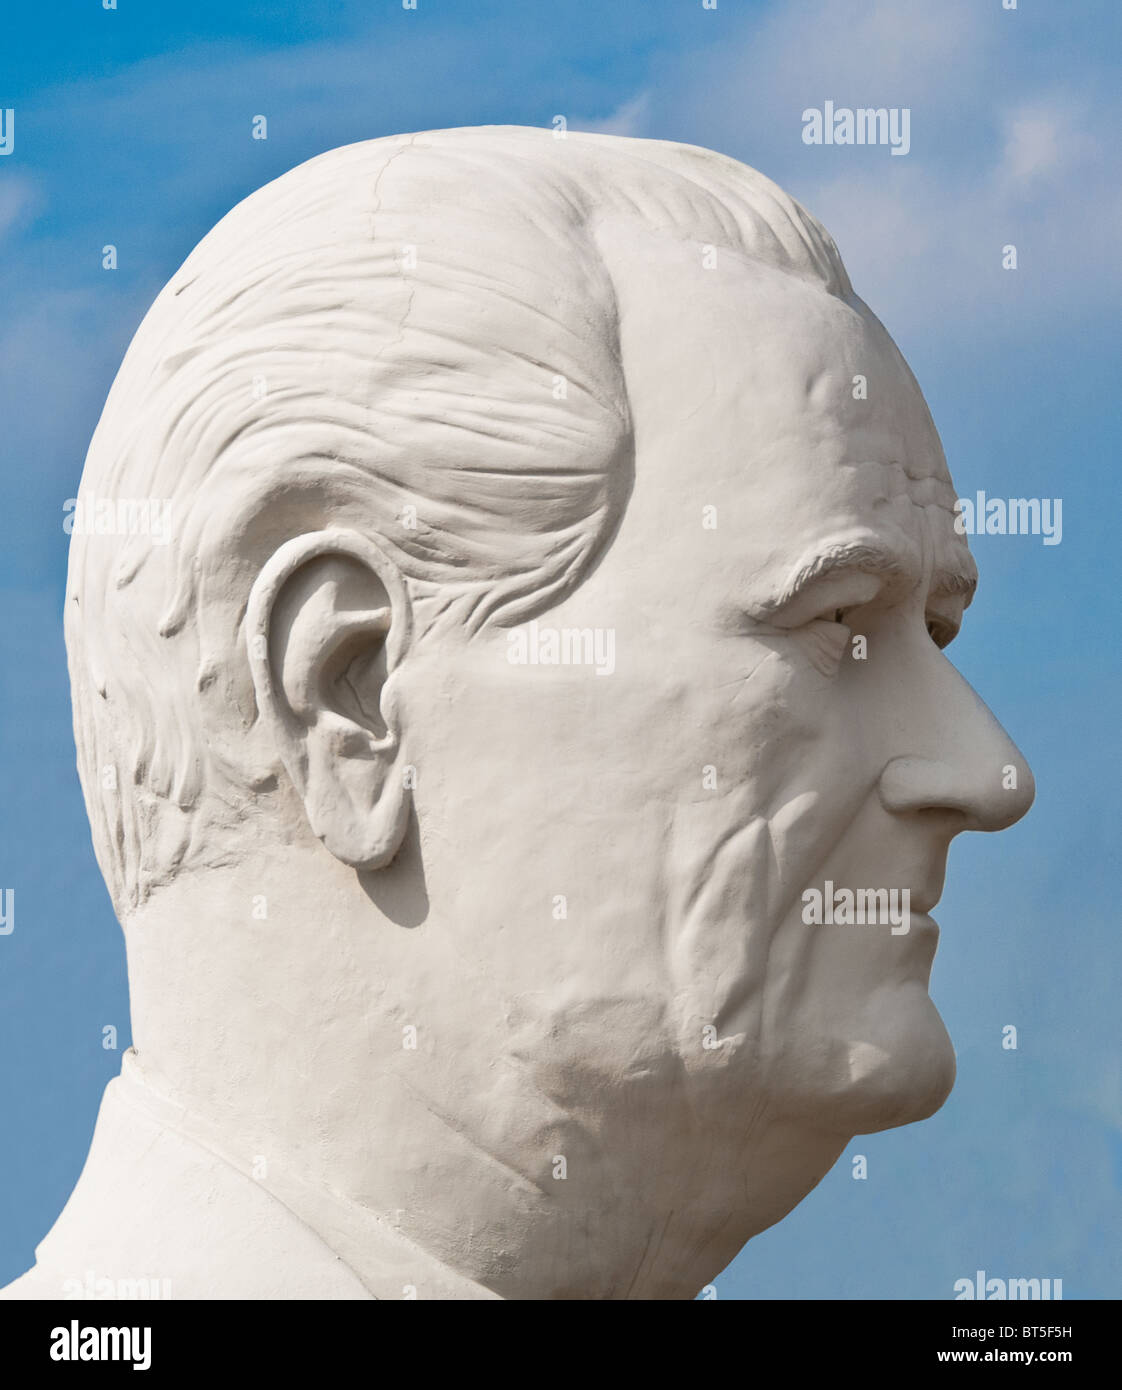 White concrete sculpture of Lyndon B. Johnson (36th US President ) at David Adickes Sculpturworx Studio in Houston, Stock Photo